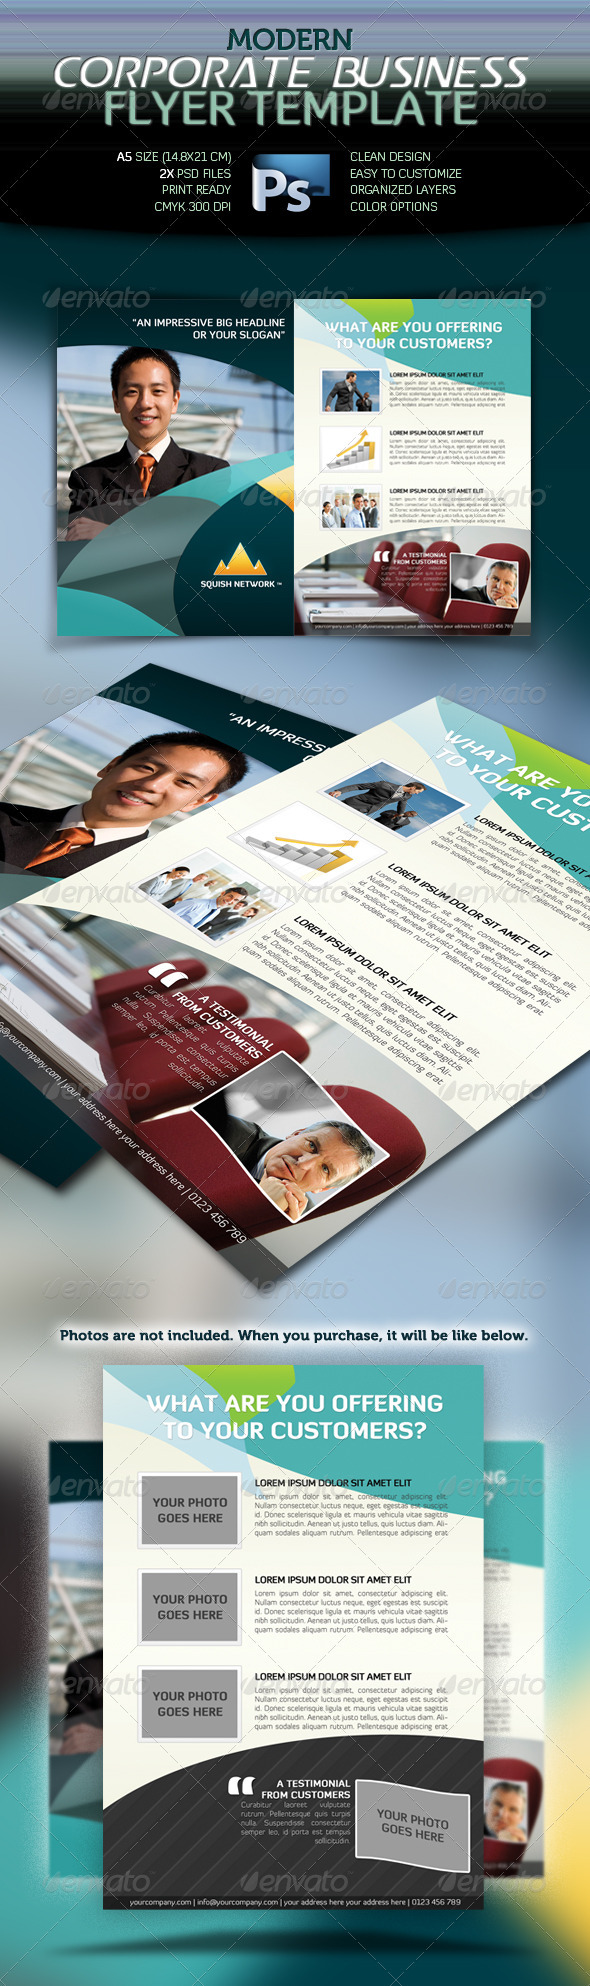 GraphicRiver Modern Corporate Business Flyer 1687304